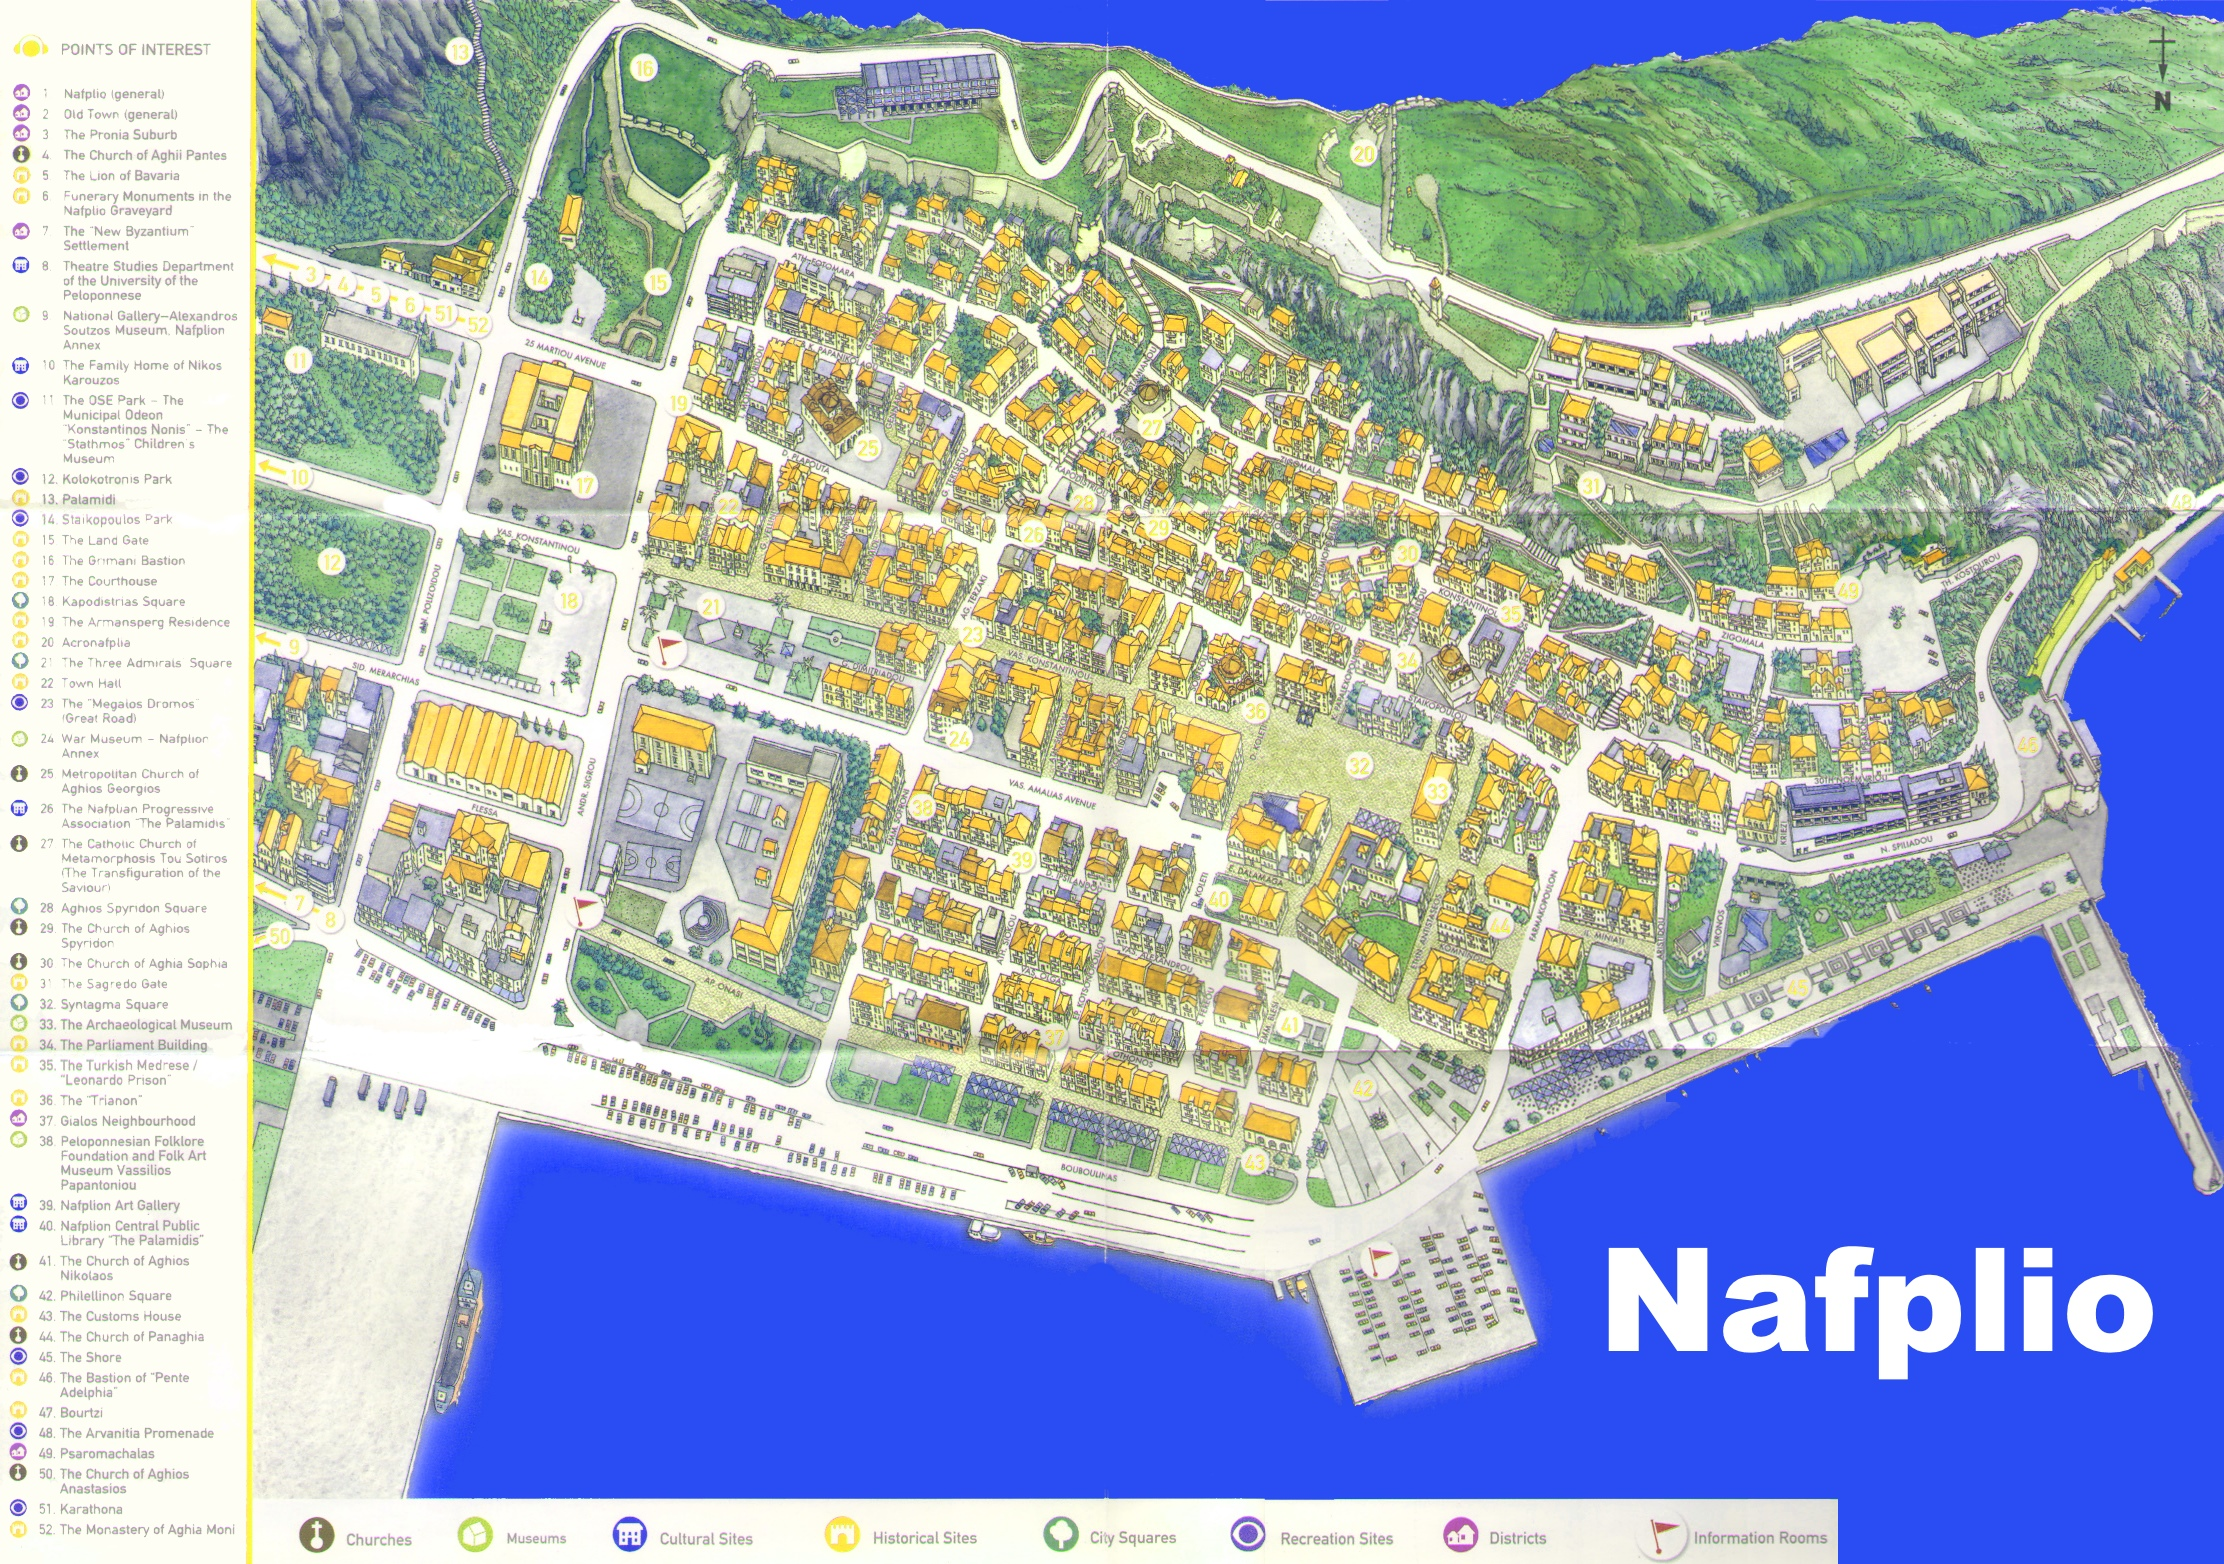 Nafplio Old Town Map